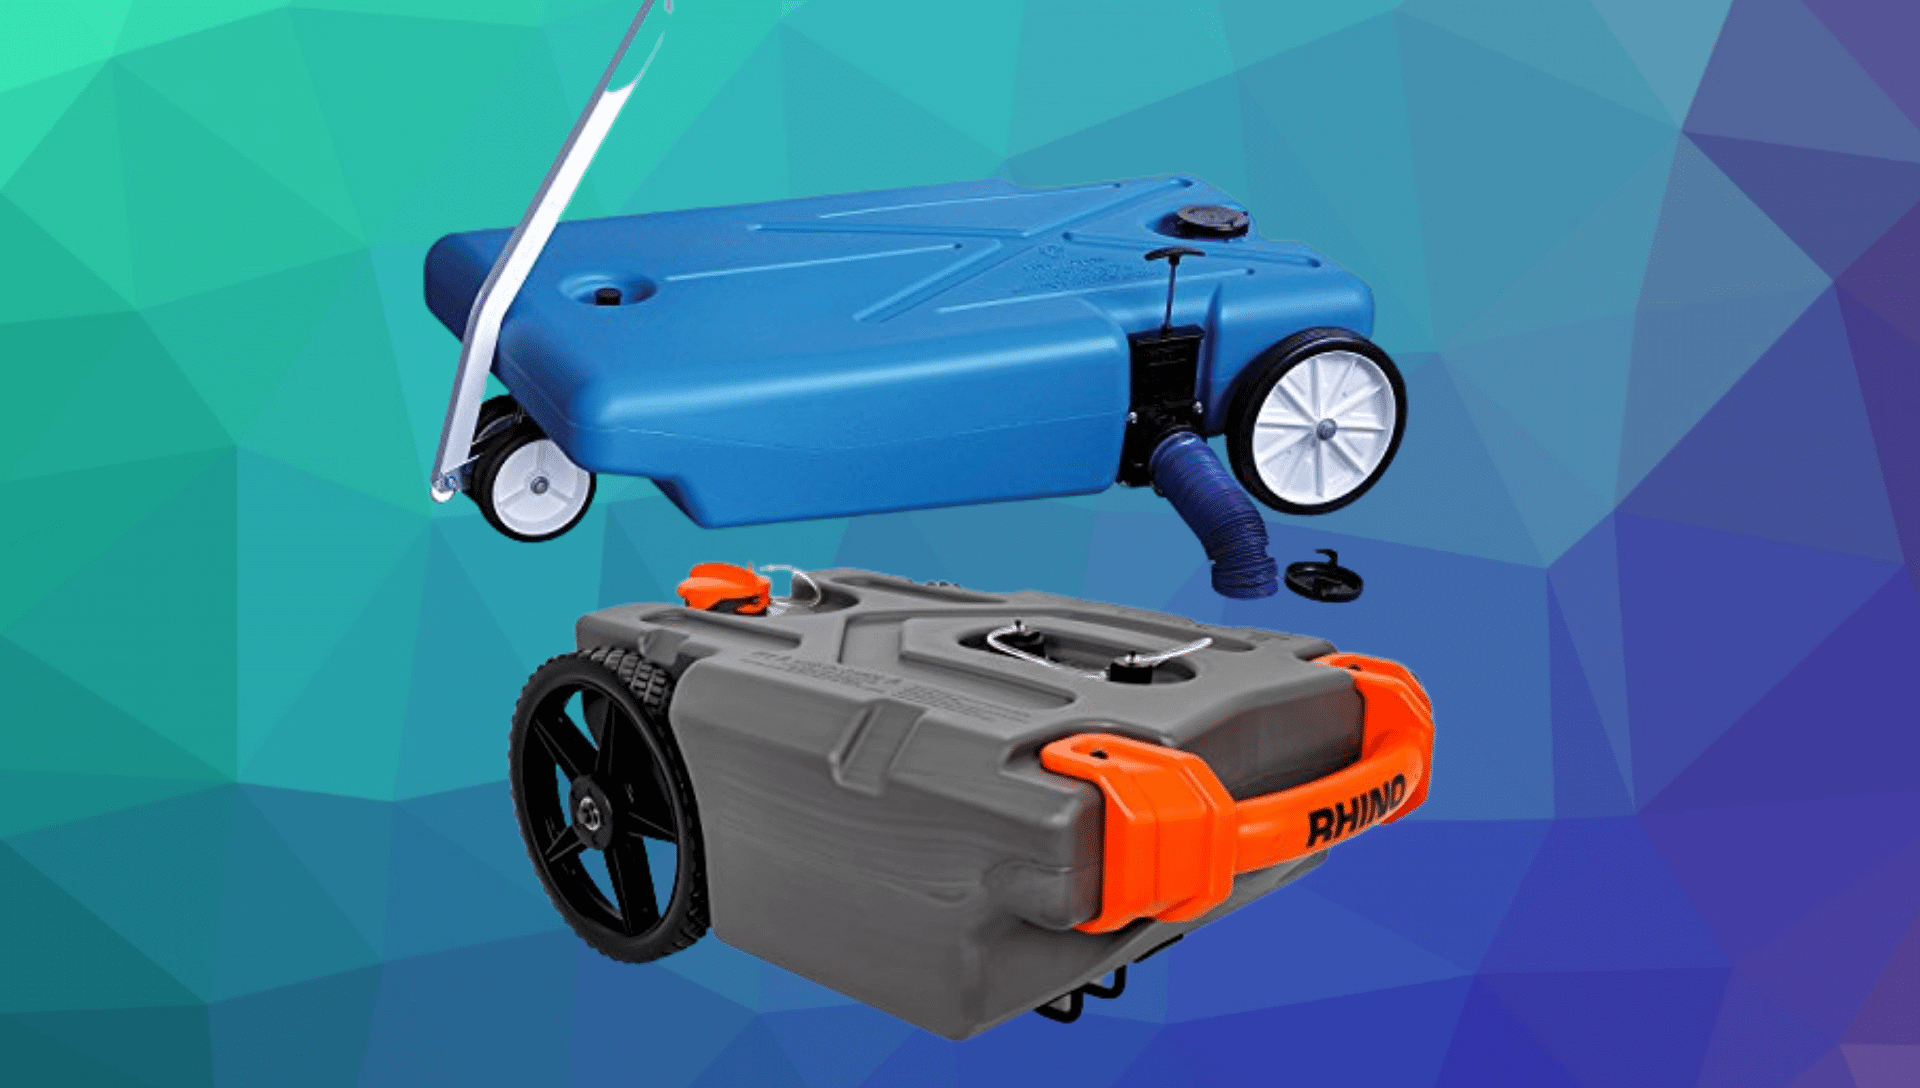 Two RV portable waste tanks are shown as the best RV portable waste tanks.